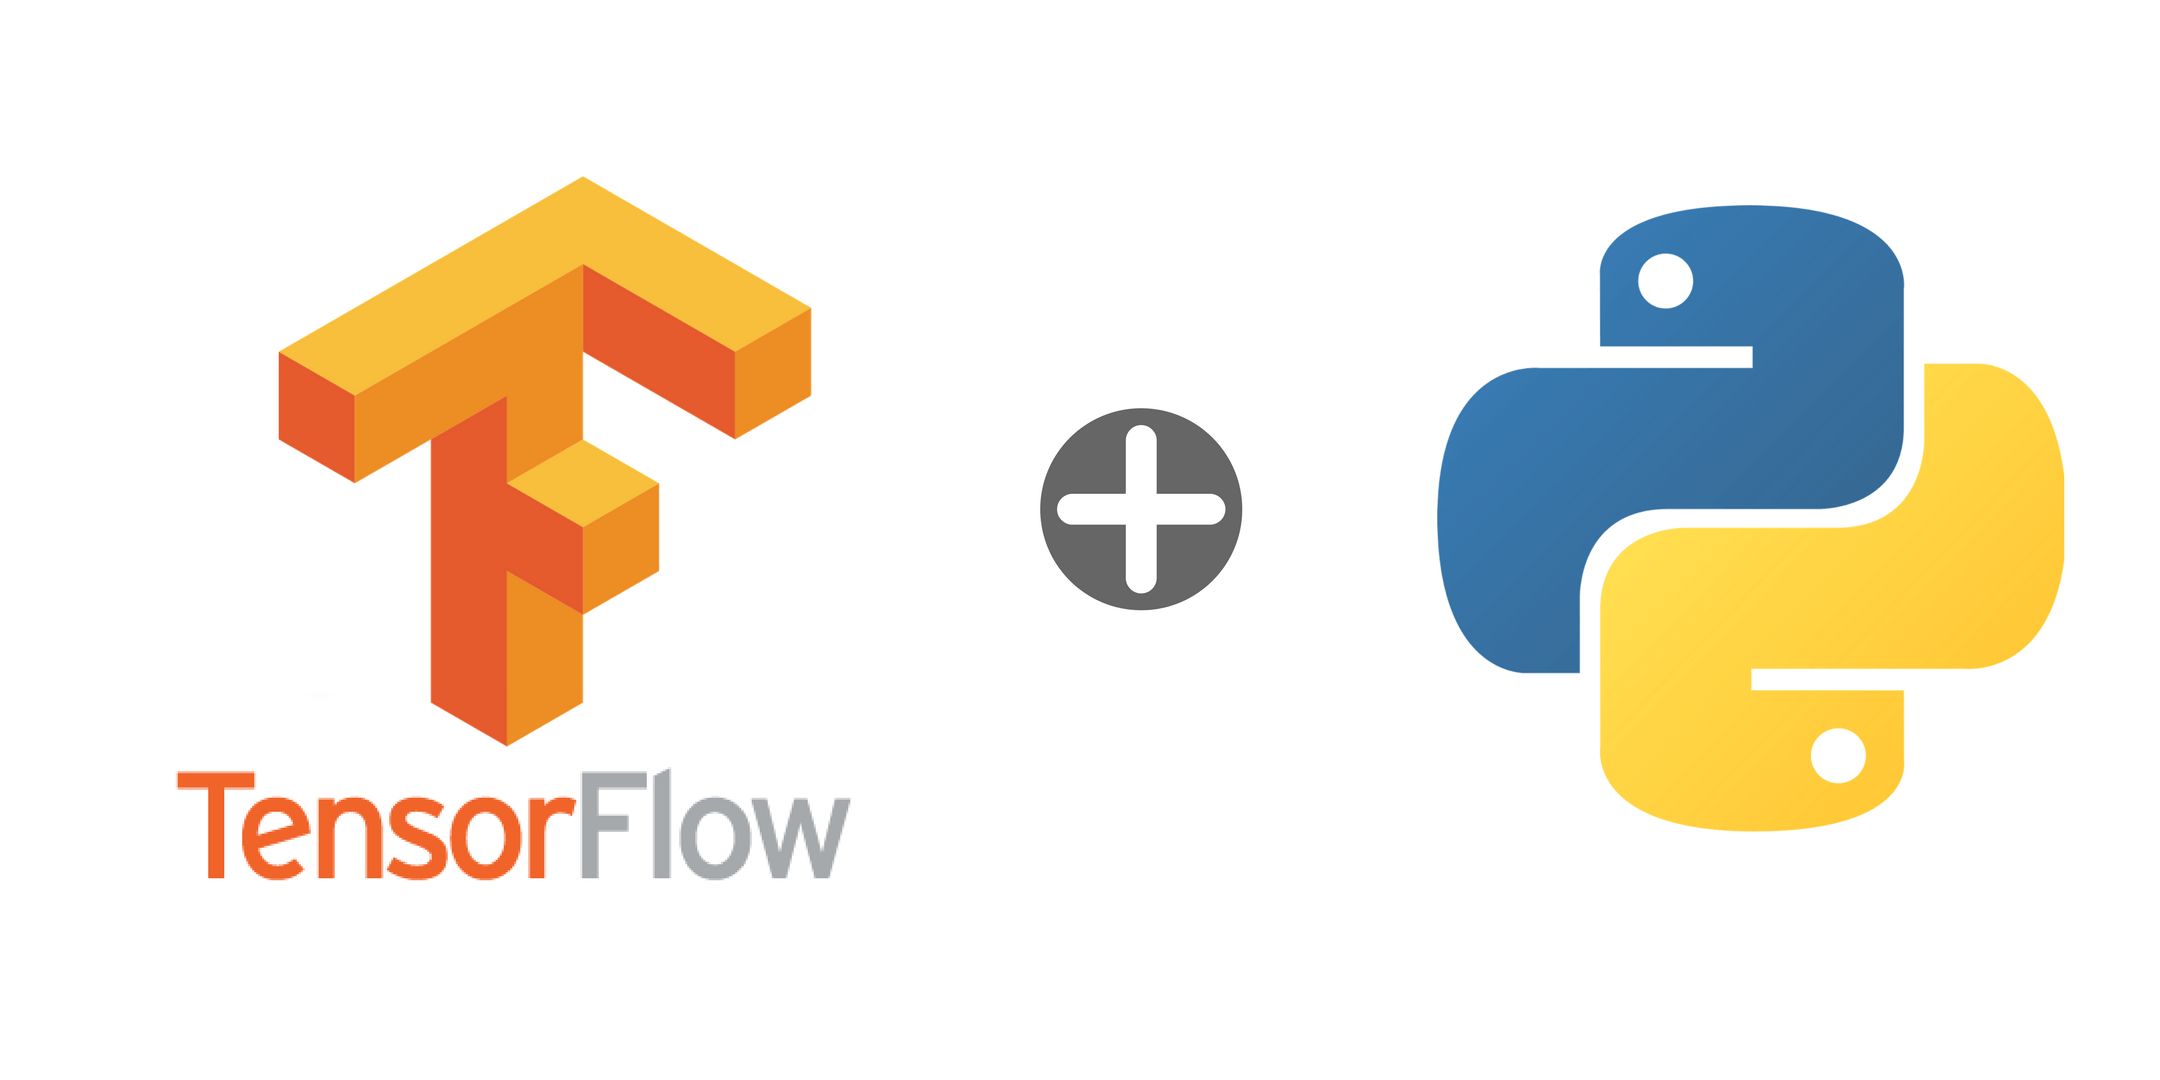 Deep Learning Training Bootcamp - Hands-On with Python, TensorFlow | Live Instructor-Led Classes | Certification & Projects Included | 100% Moneyback Guarantee | Paris, France